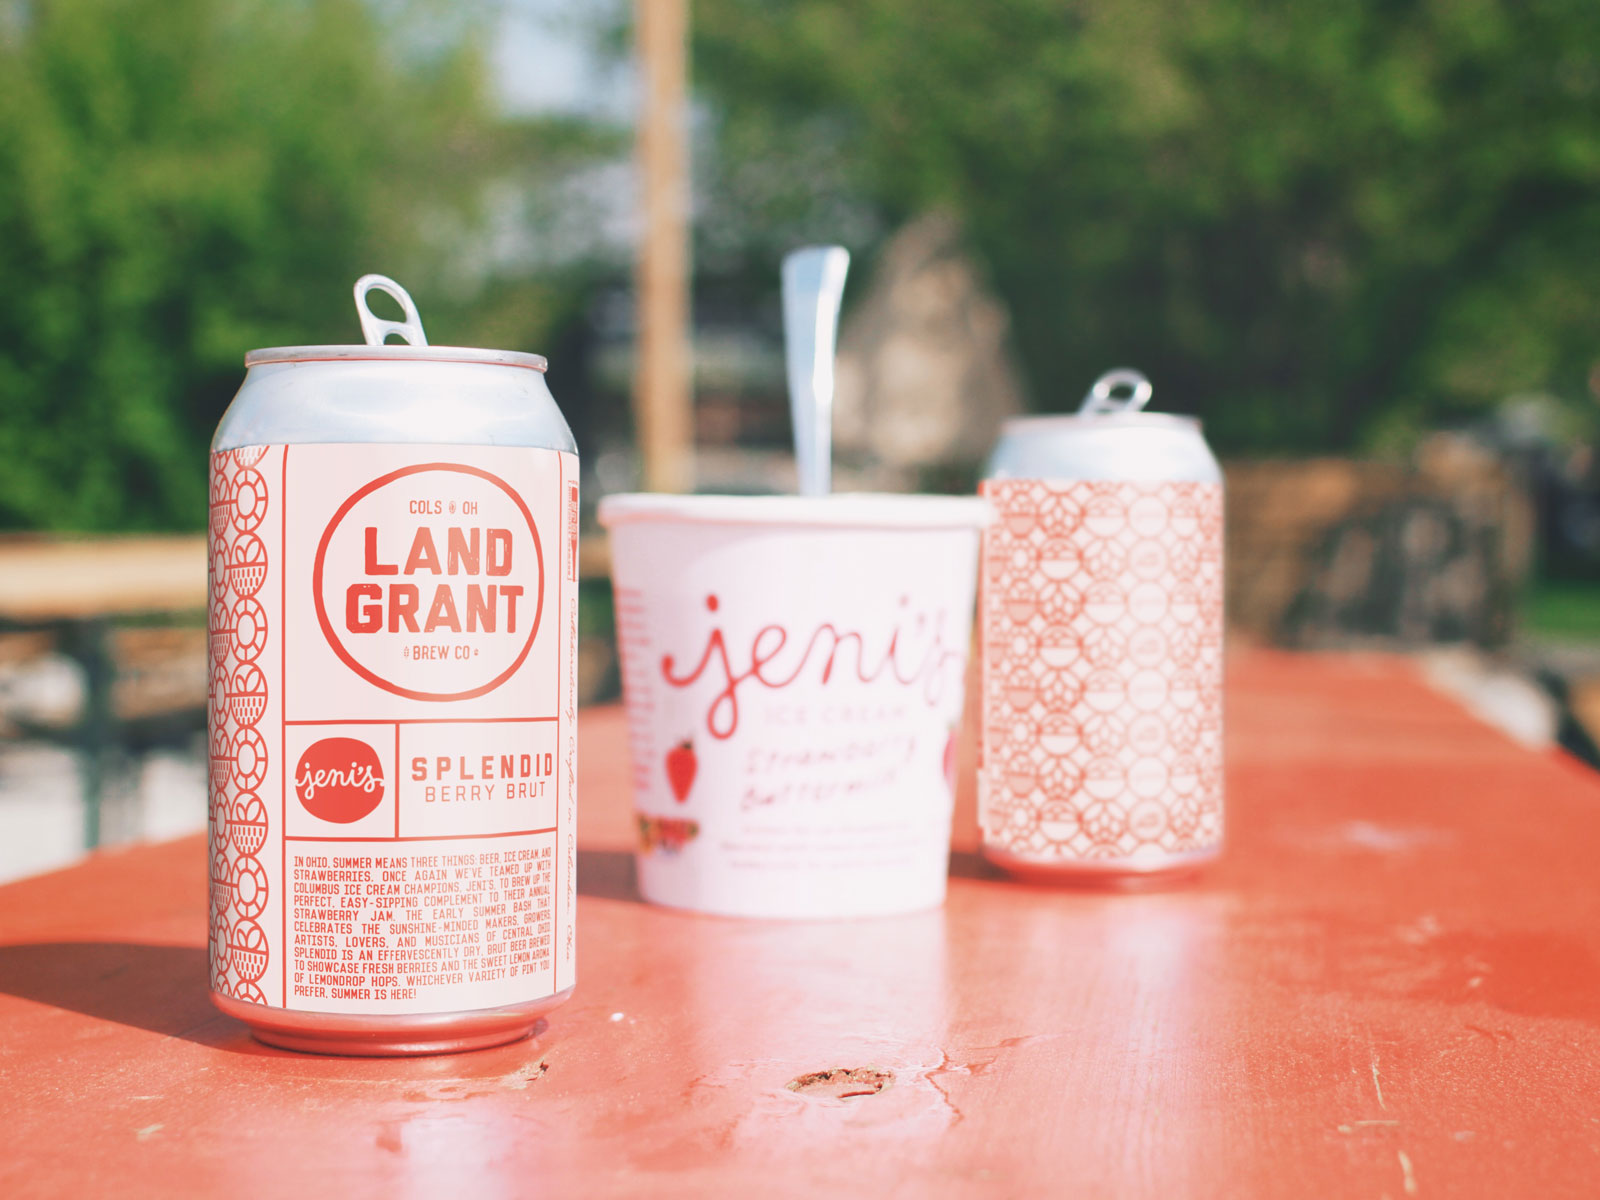 Jeni's Splendid Collaborated on a Berry-Infused Beer Just in Time for Strawberry Season